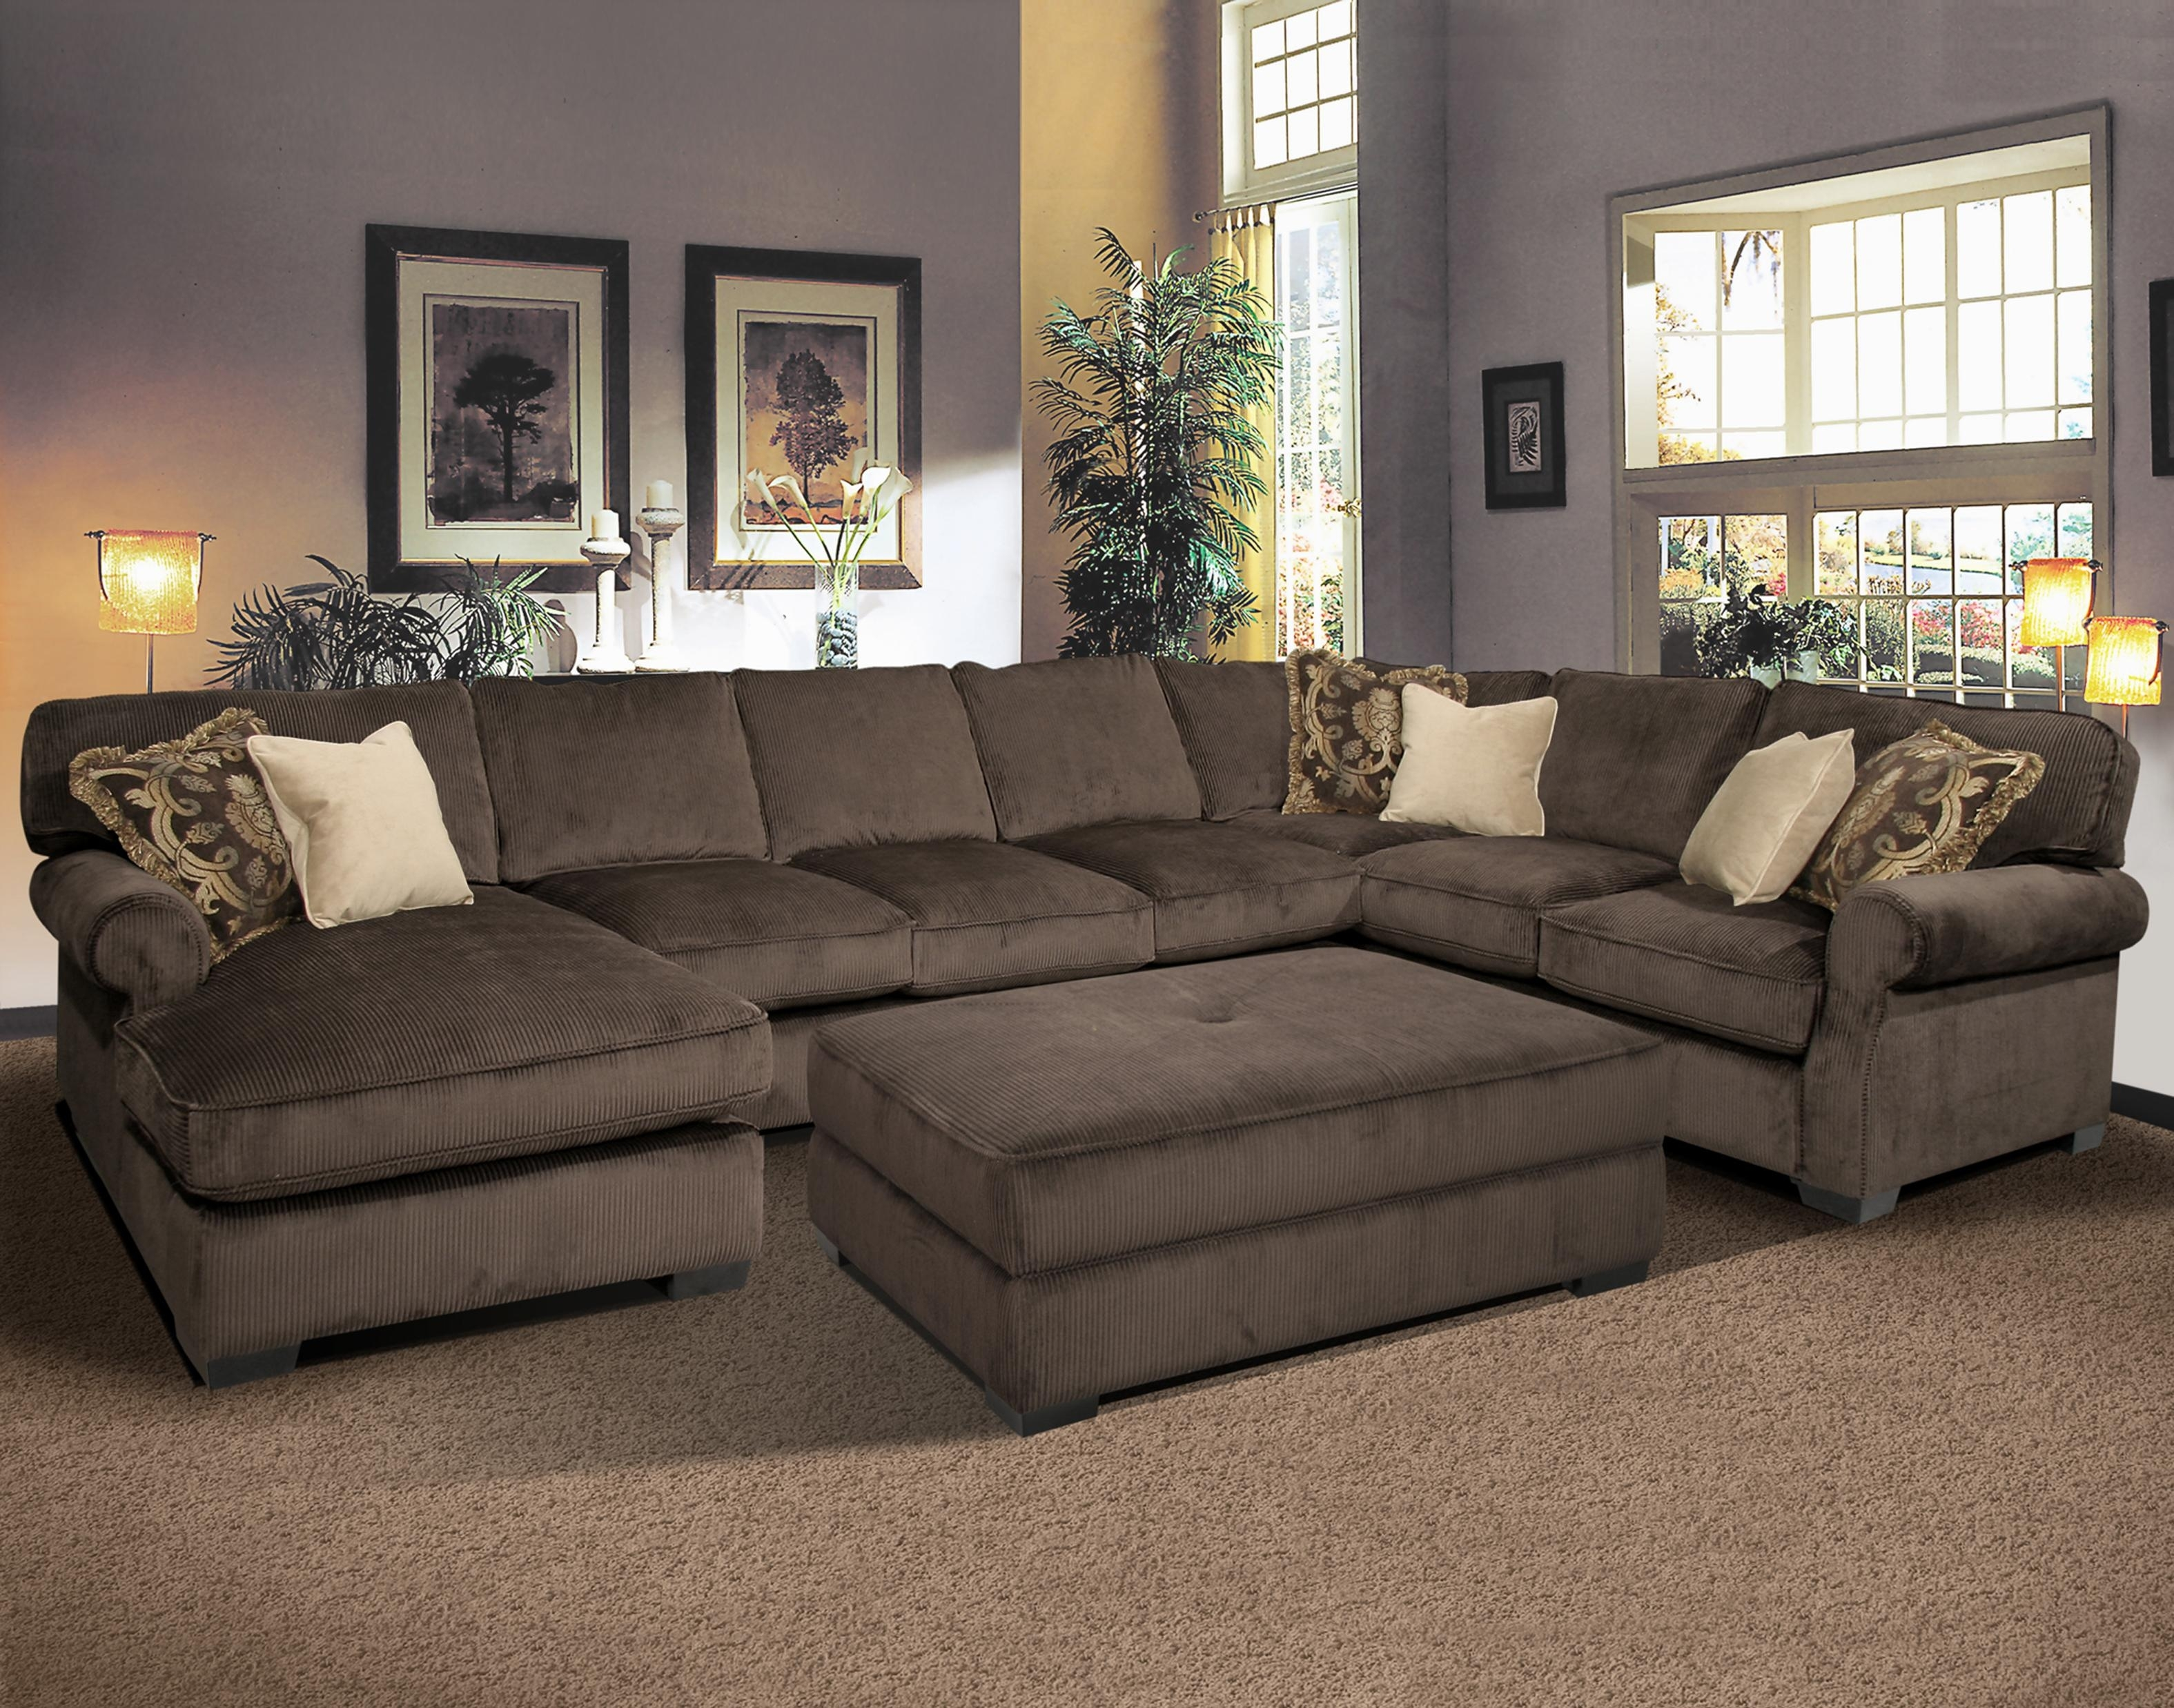 Elegant Large U Shaped Sectional Sofas 14 On Lime Green Sectional With Regard To Elegant Sectional : sectional sofas images - Sectionals, Sofas & Couches